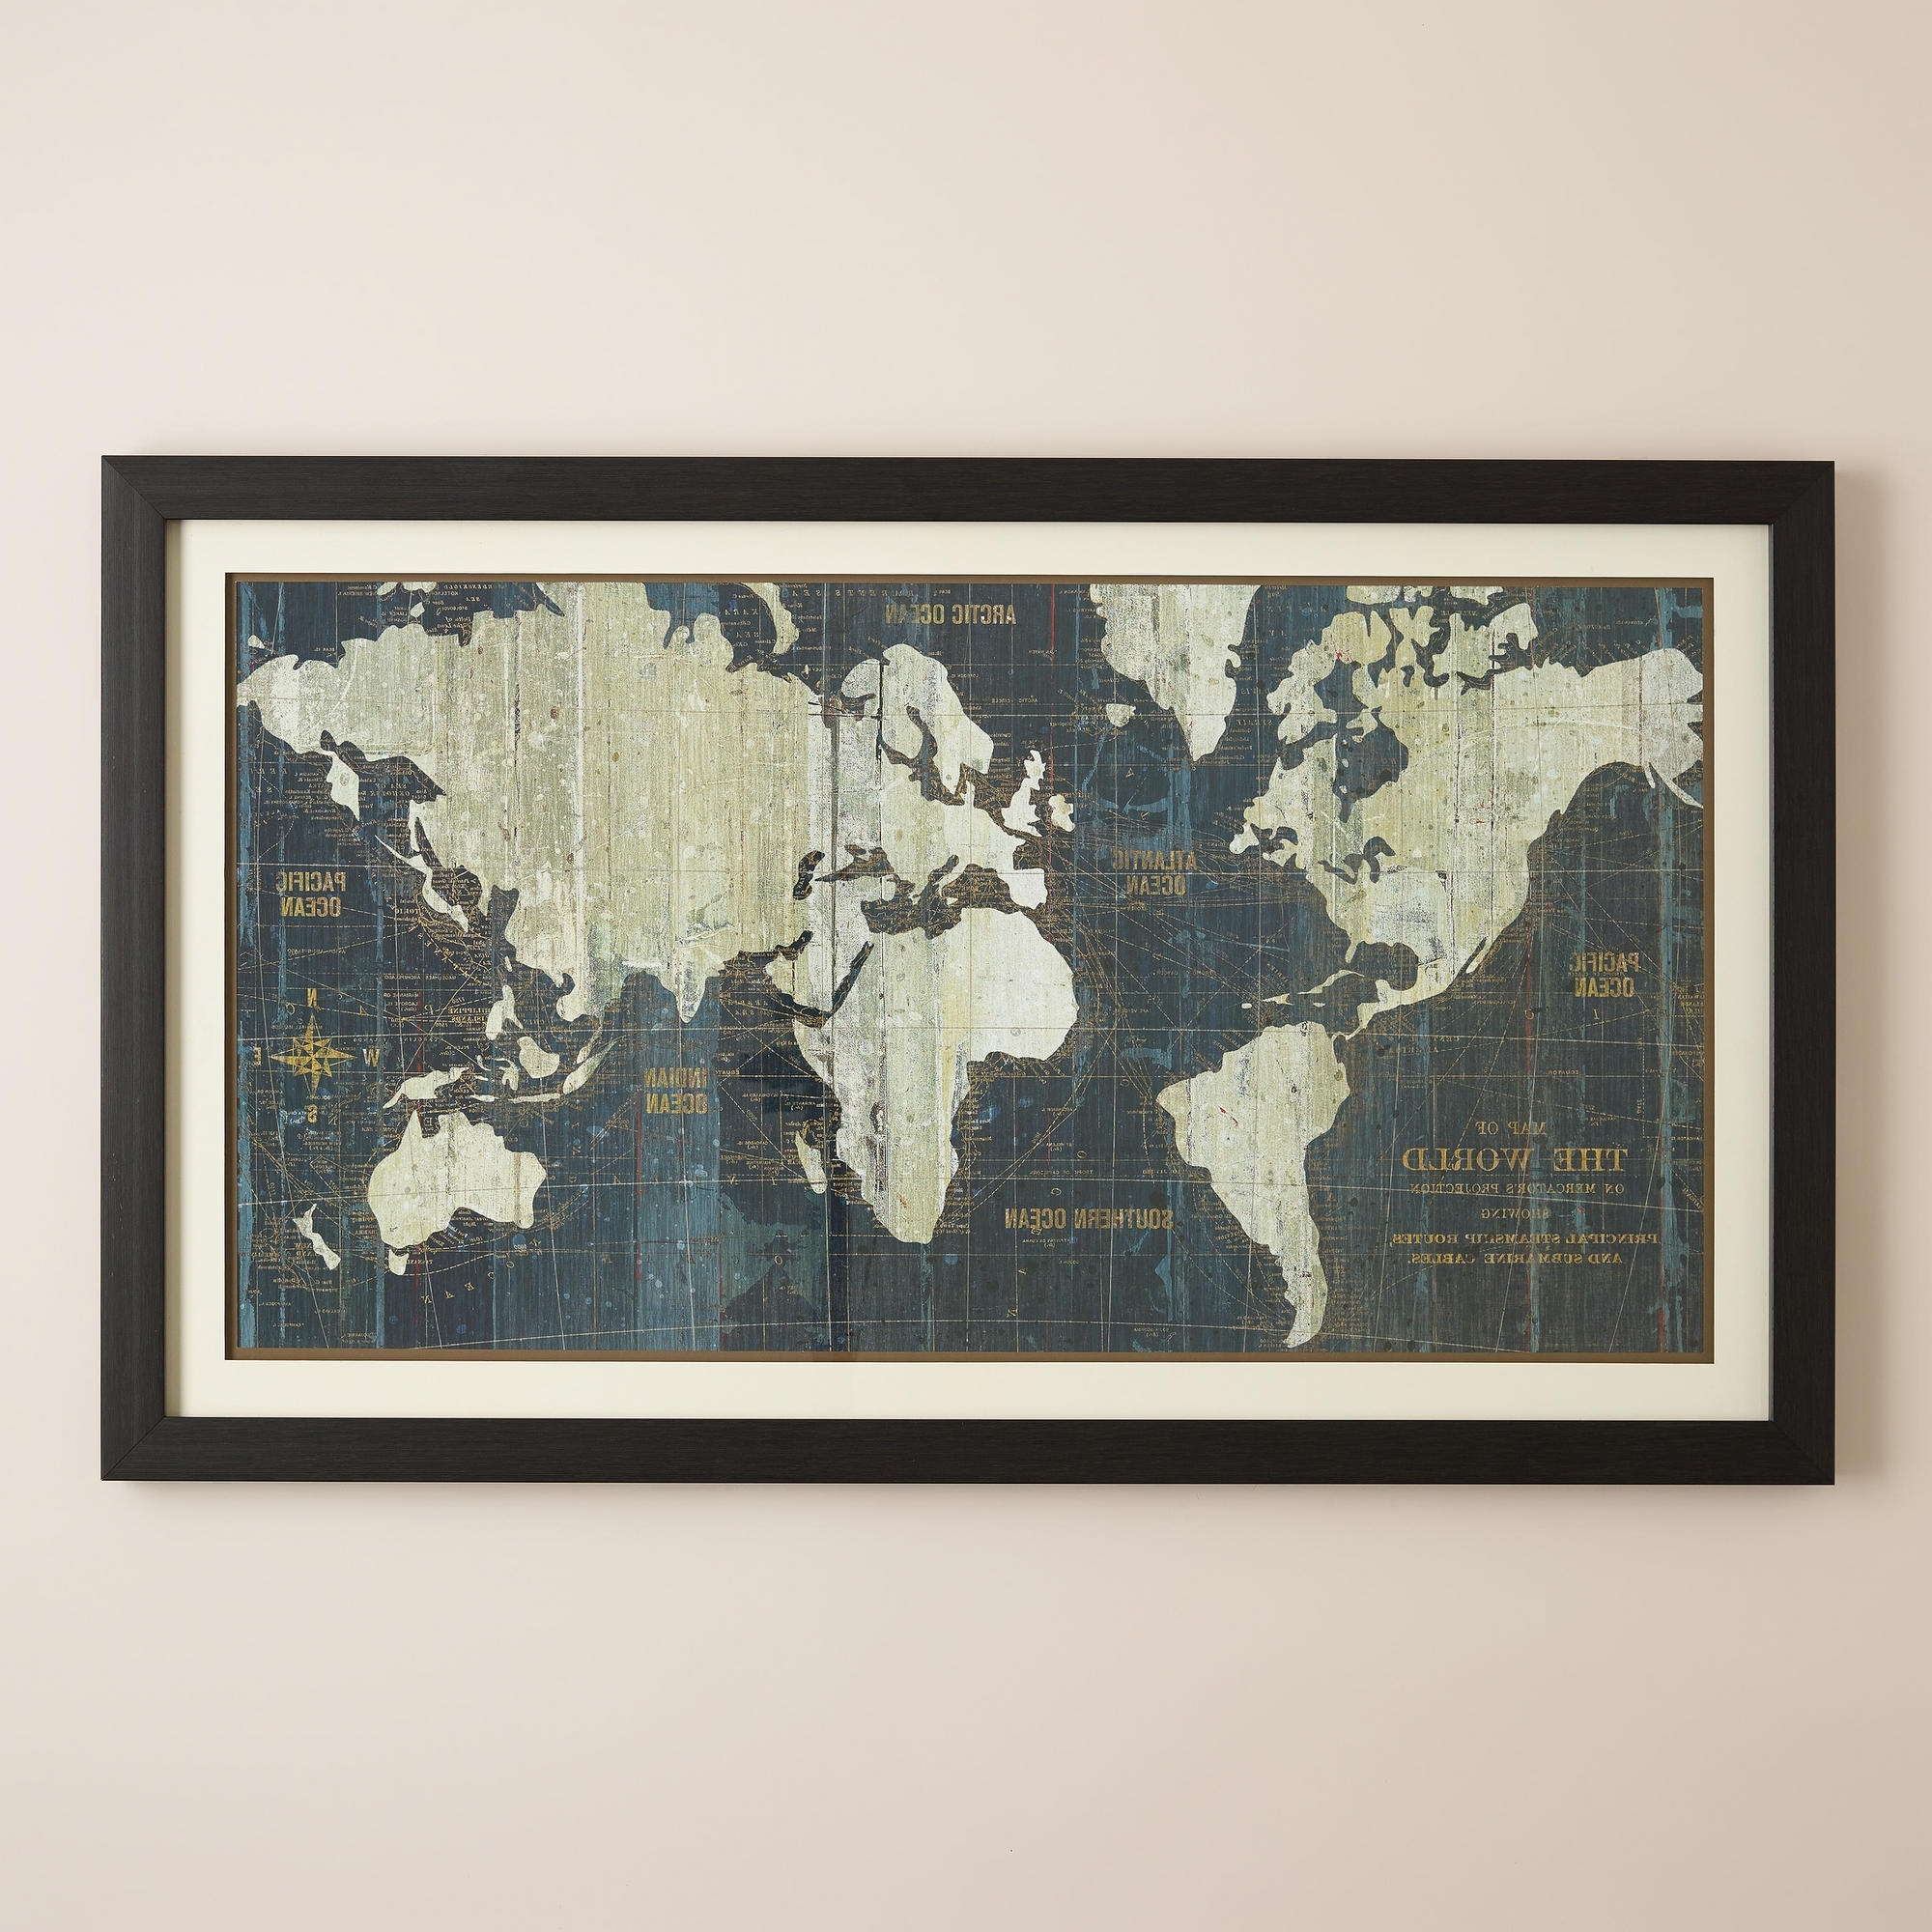 World Map Wall Art Framed With Regard To Most Up To Date Framed World Map For Wall Changyuheng Me And Large (View 10 of 15)